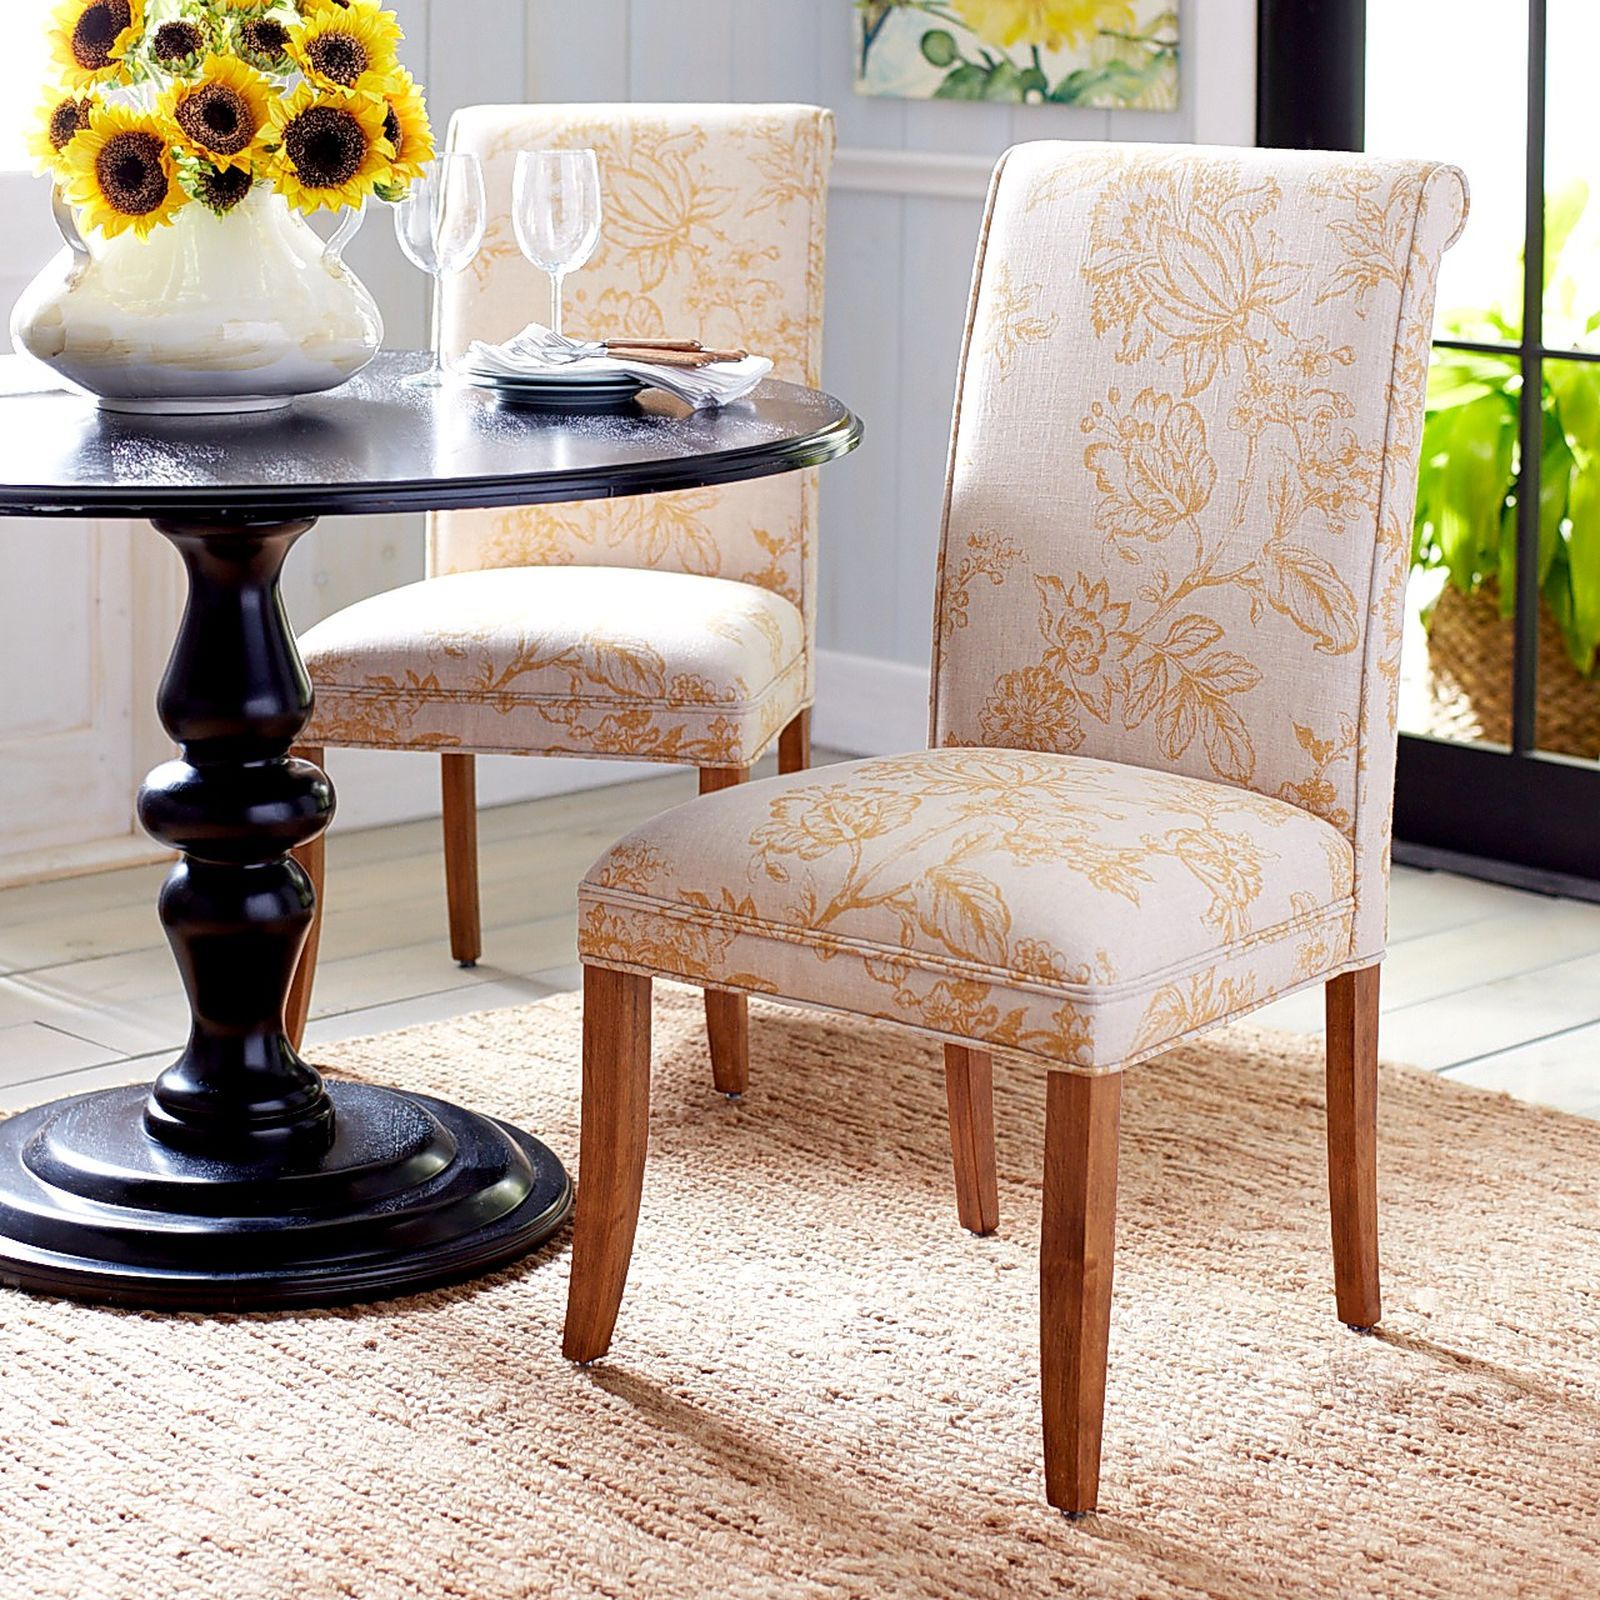 Hand upholstered in beautiful linen blend print our Angela